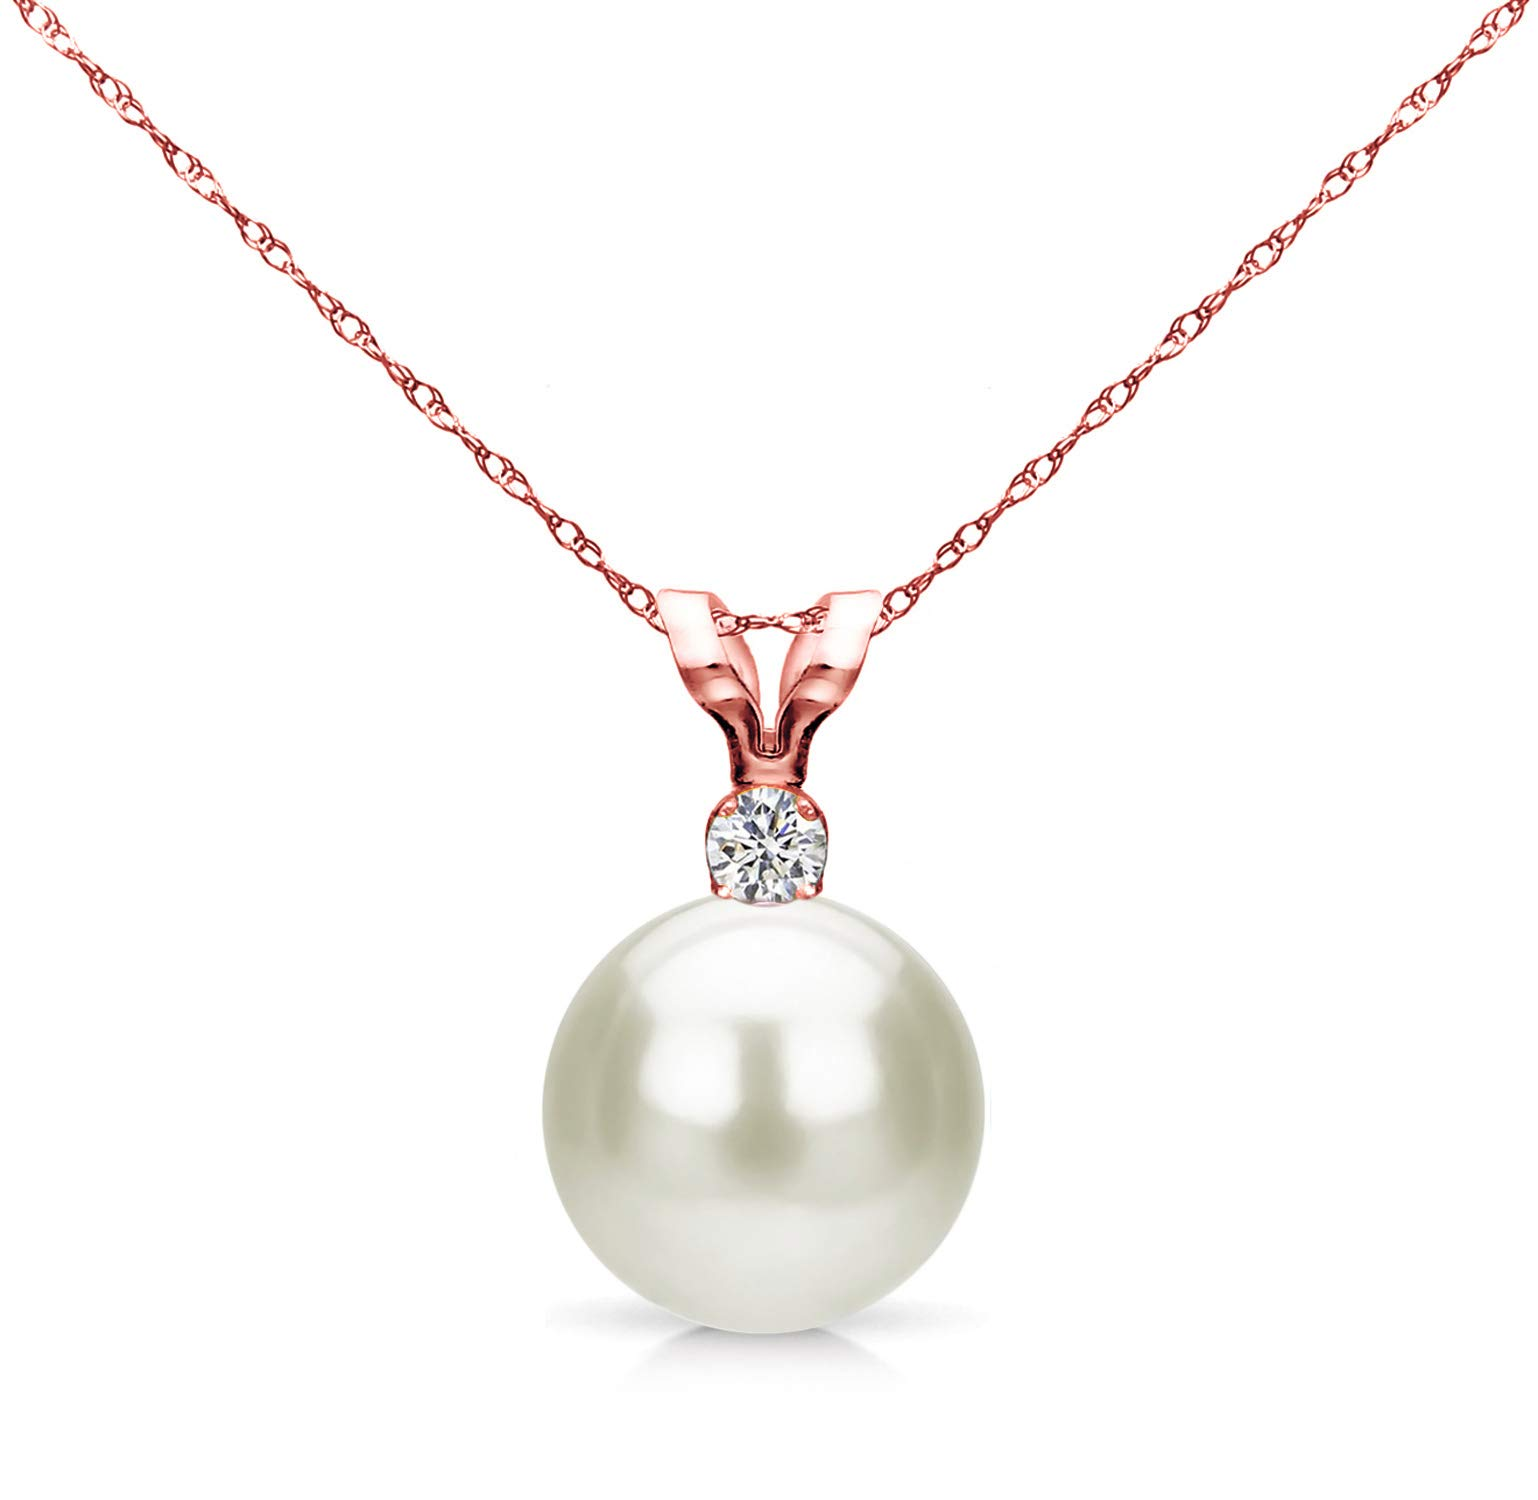 14k Gold Single 7-7.5mm White Cultured Freshwater Pearl and Diamond Pendant Necklace (G-H, SI1-SI2) - Choice of Gold Color and Diamond Size Teacher appreciation gifts